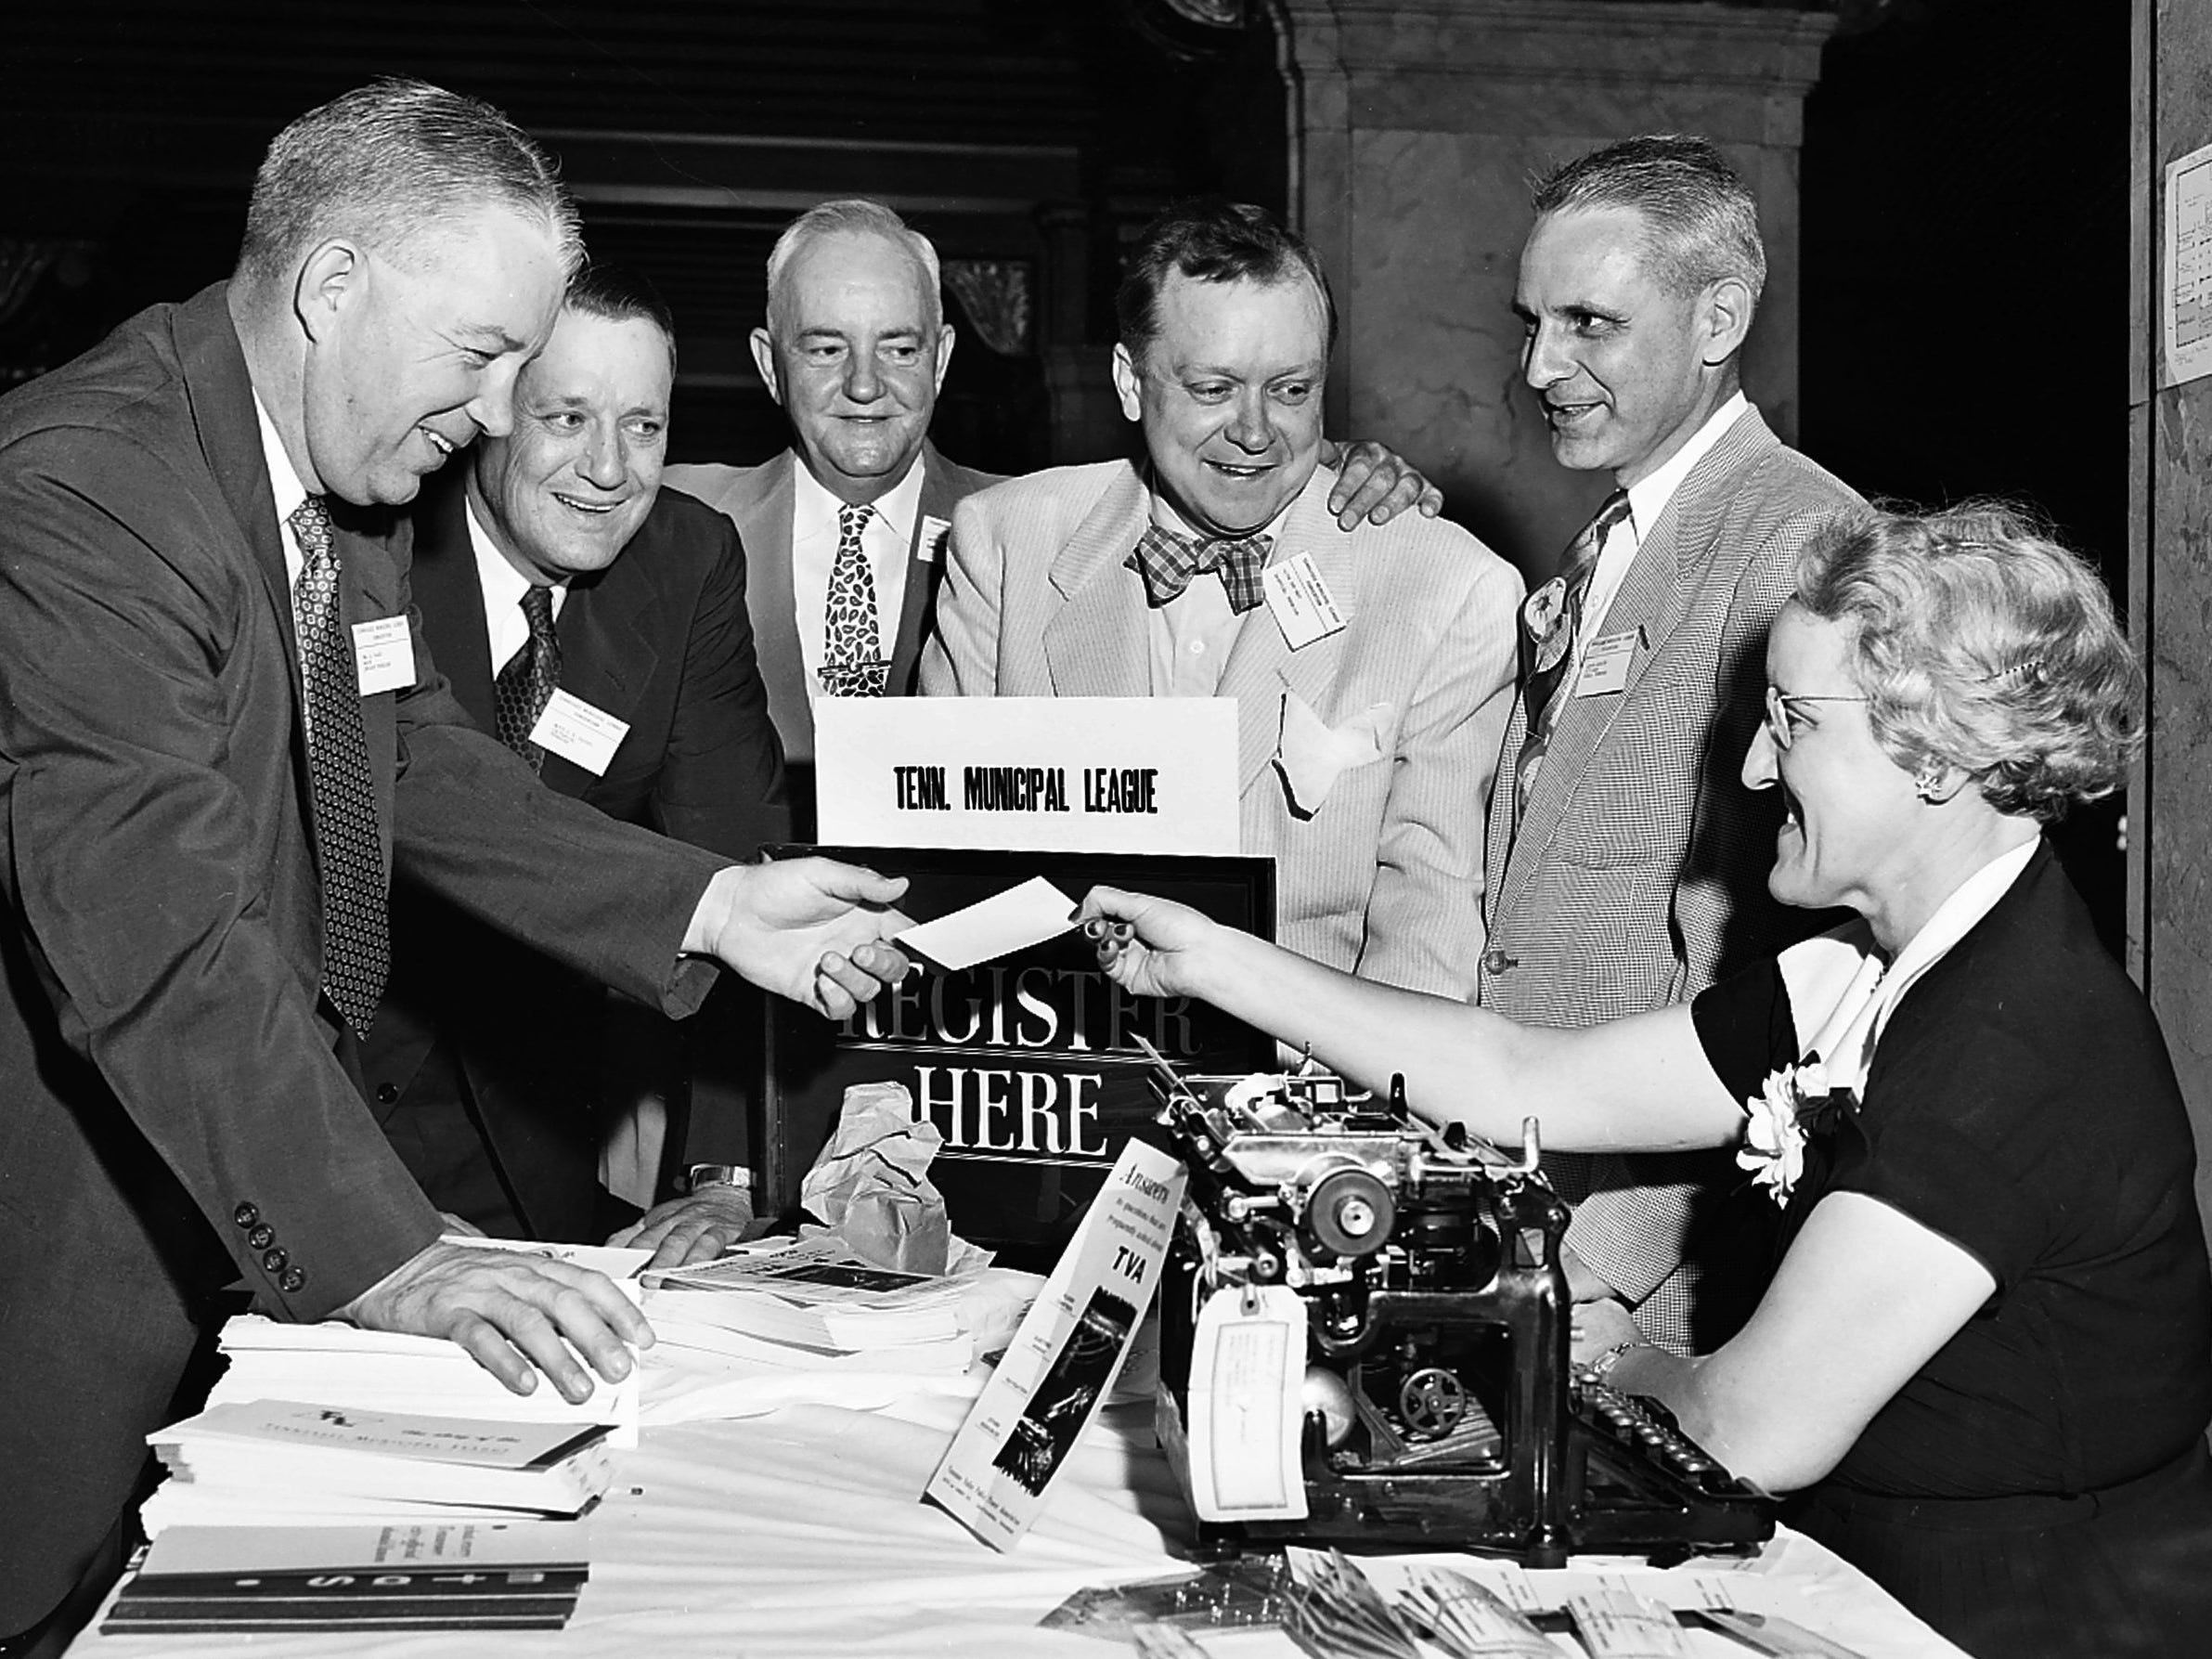 The reception desk at the Peabody was a busy place June 7, 1953 as top officials from all over the state registered for the annual Tennessee Municipal League meeting. Mayor Frank Tobey, third left, of Memphis was host. Others are, from left, Mayor W.D. Baird of Lebanon, TML president; Mayor P.R. Olgiati of Chattanooga; Mayor Ben West of Nashville; Armond Arnurius of Norris, city recorder; and Mrs. Joe Dixon of Nashville, TML secretary.